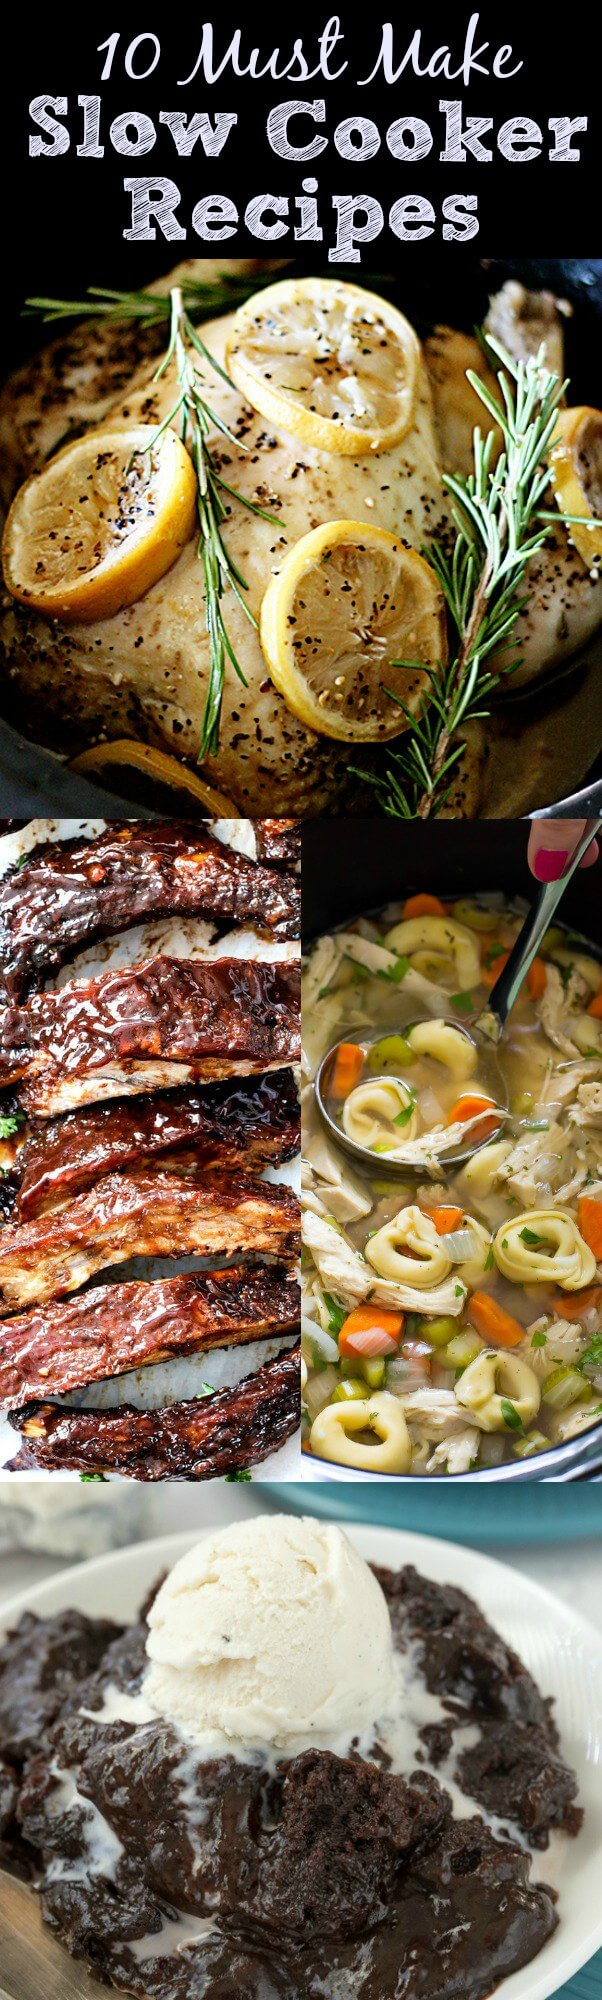 10 Must Make Slow Cooker Recipes!